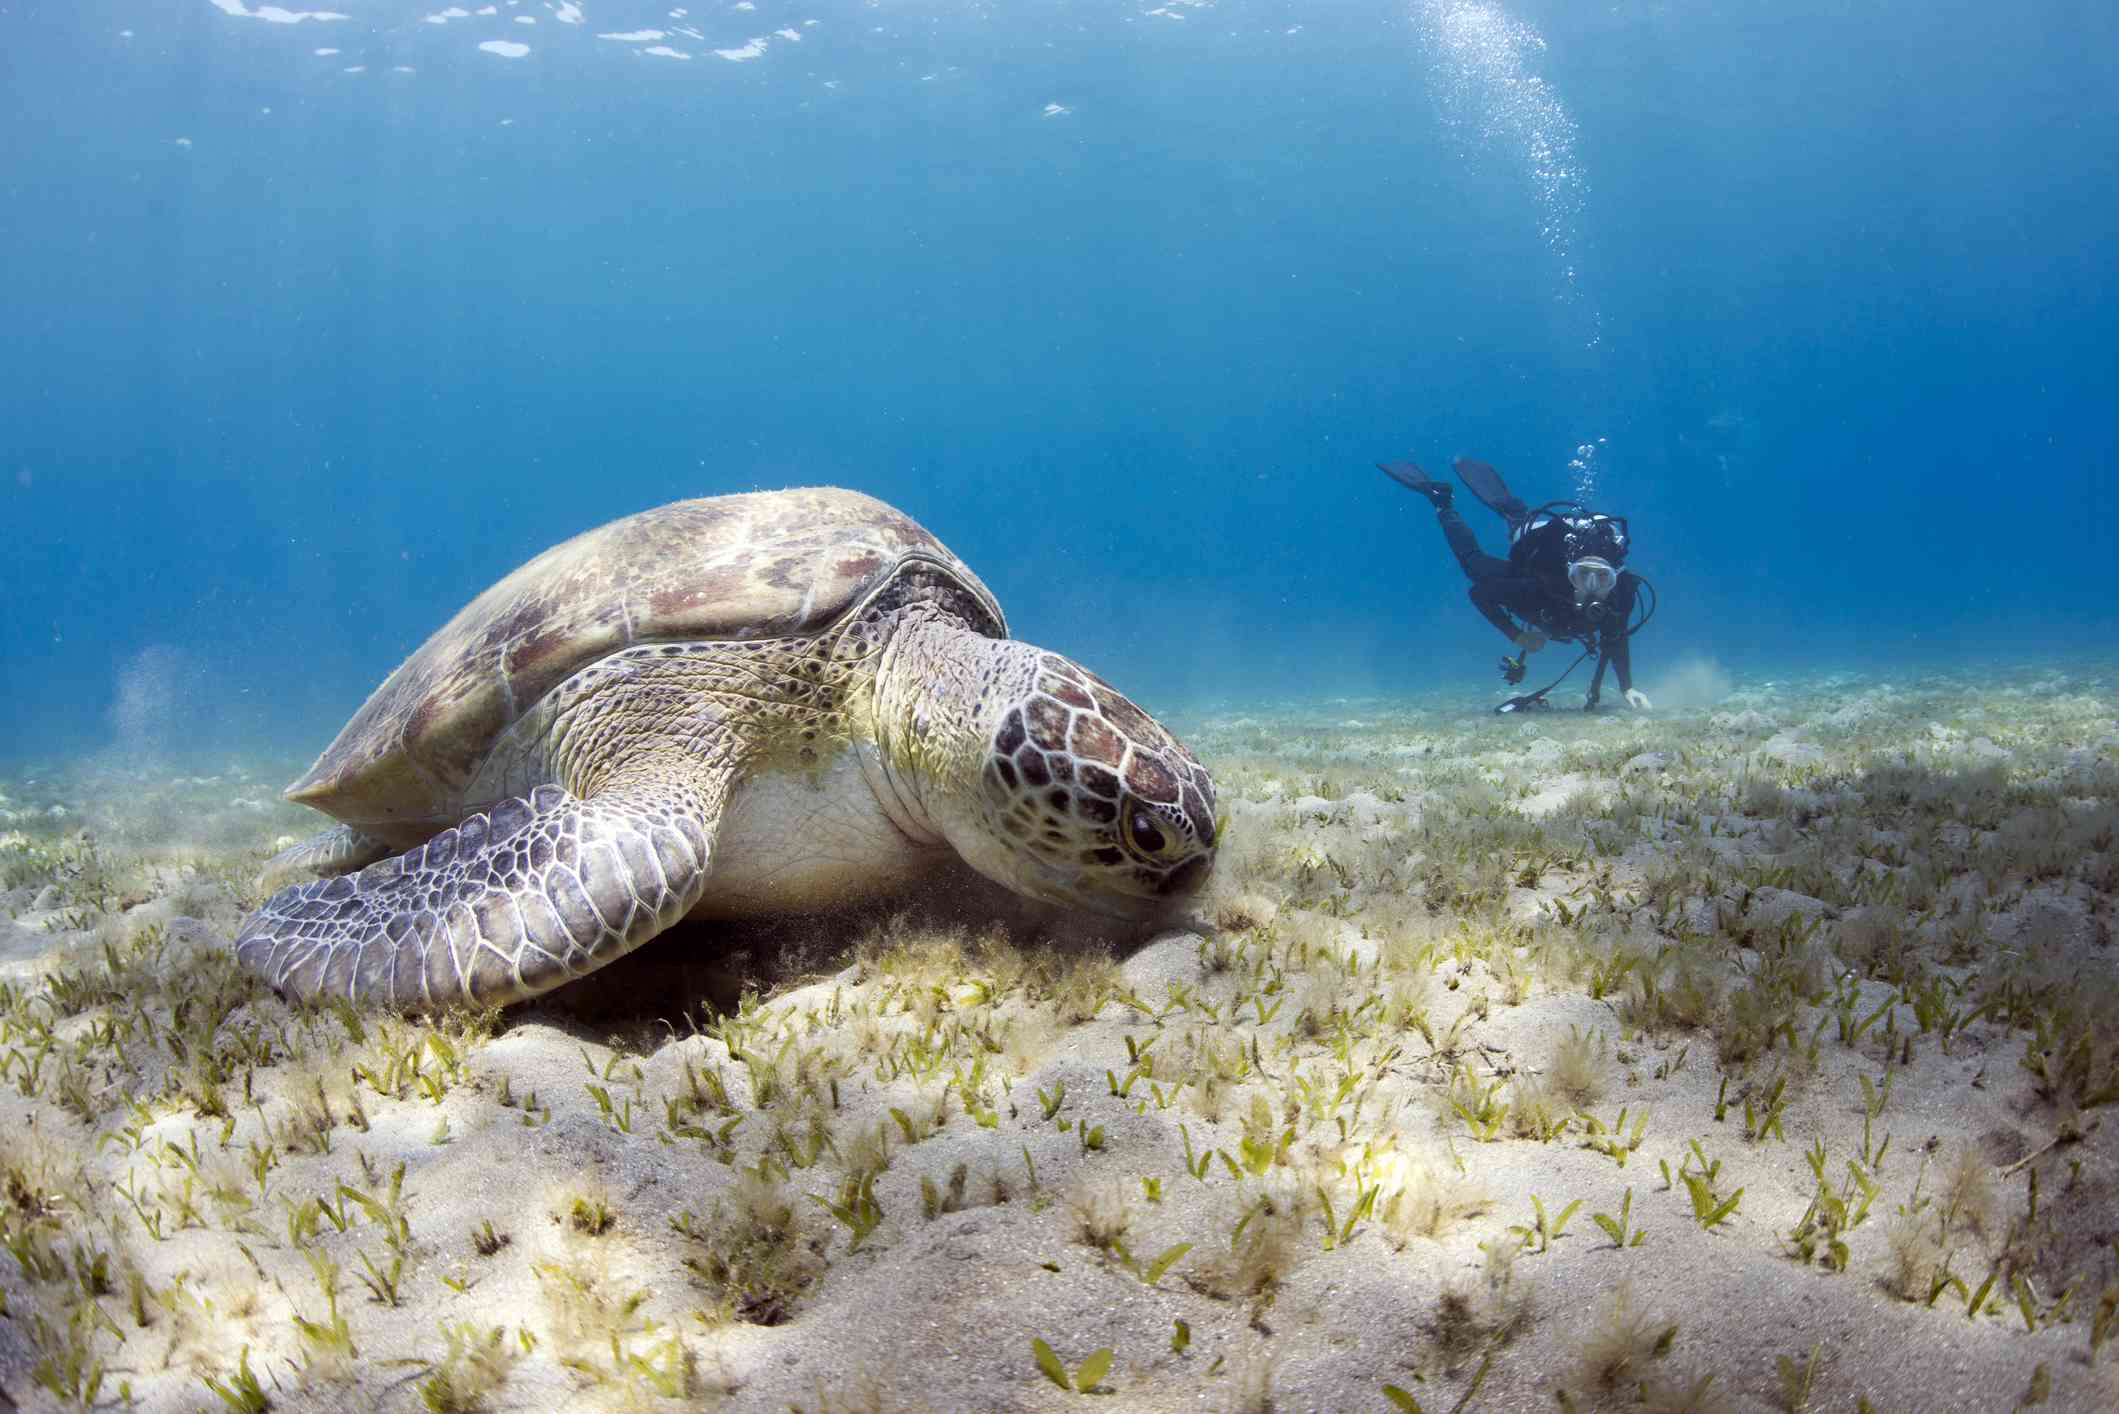 Shooting of Green sea turtle while it's feeding